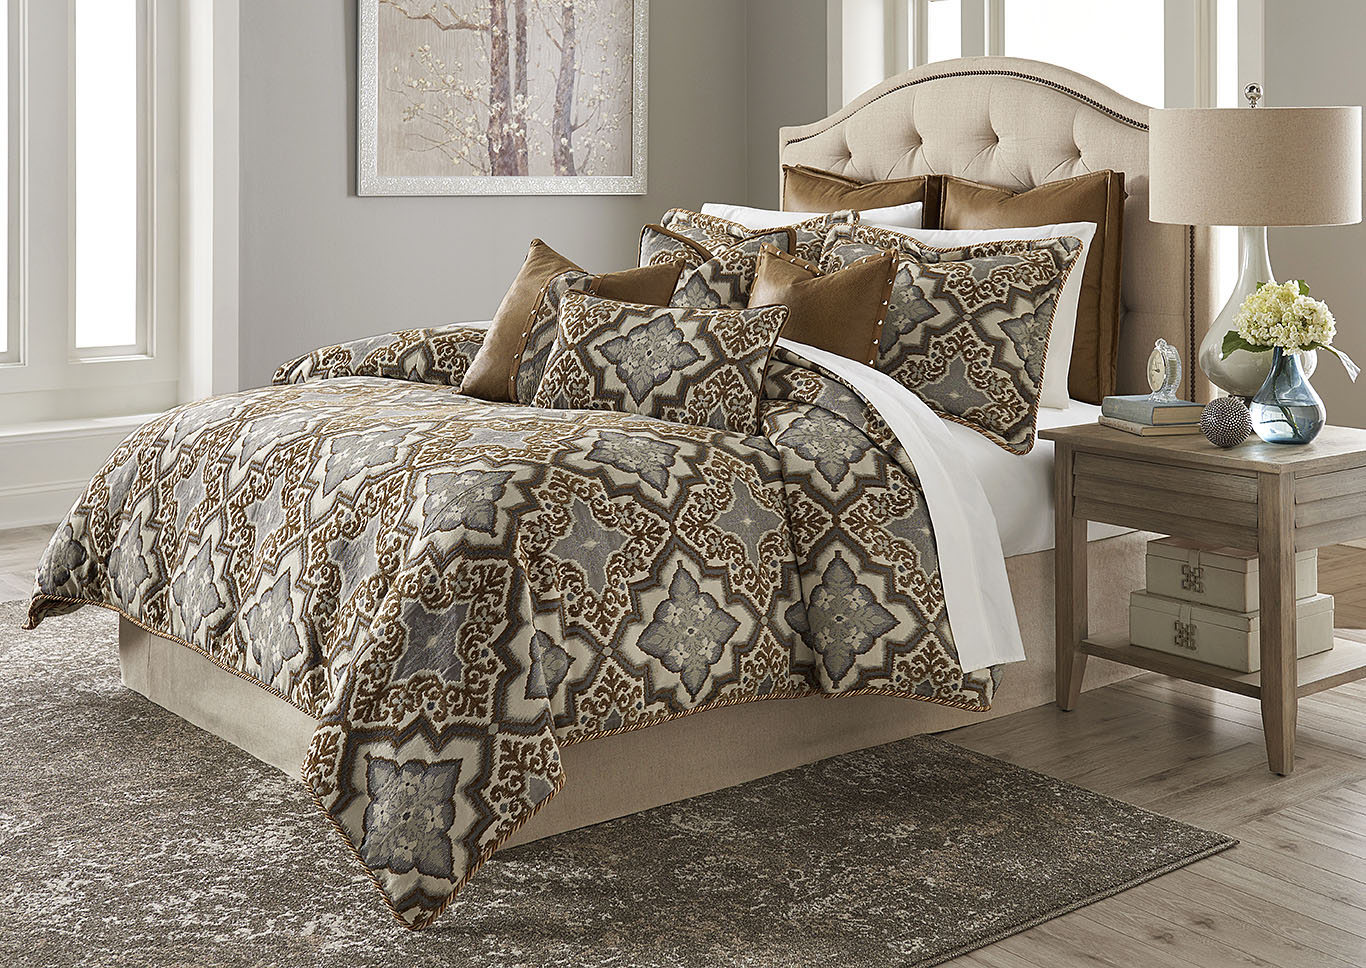 Porter Saddle 9 pc. Queen Comforter Set,AICO